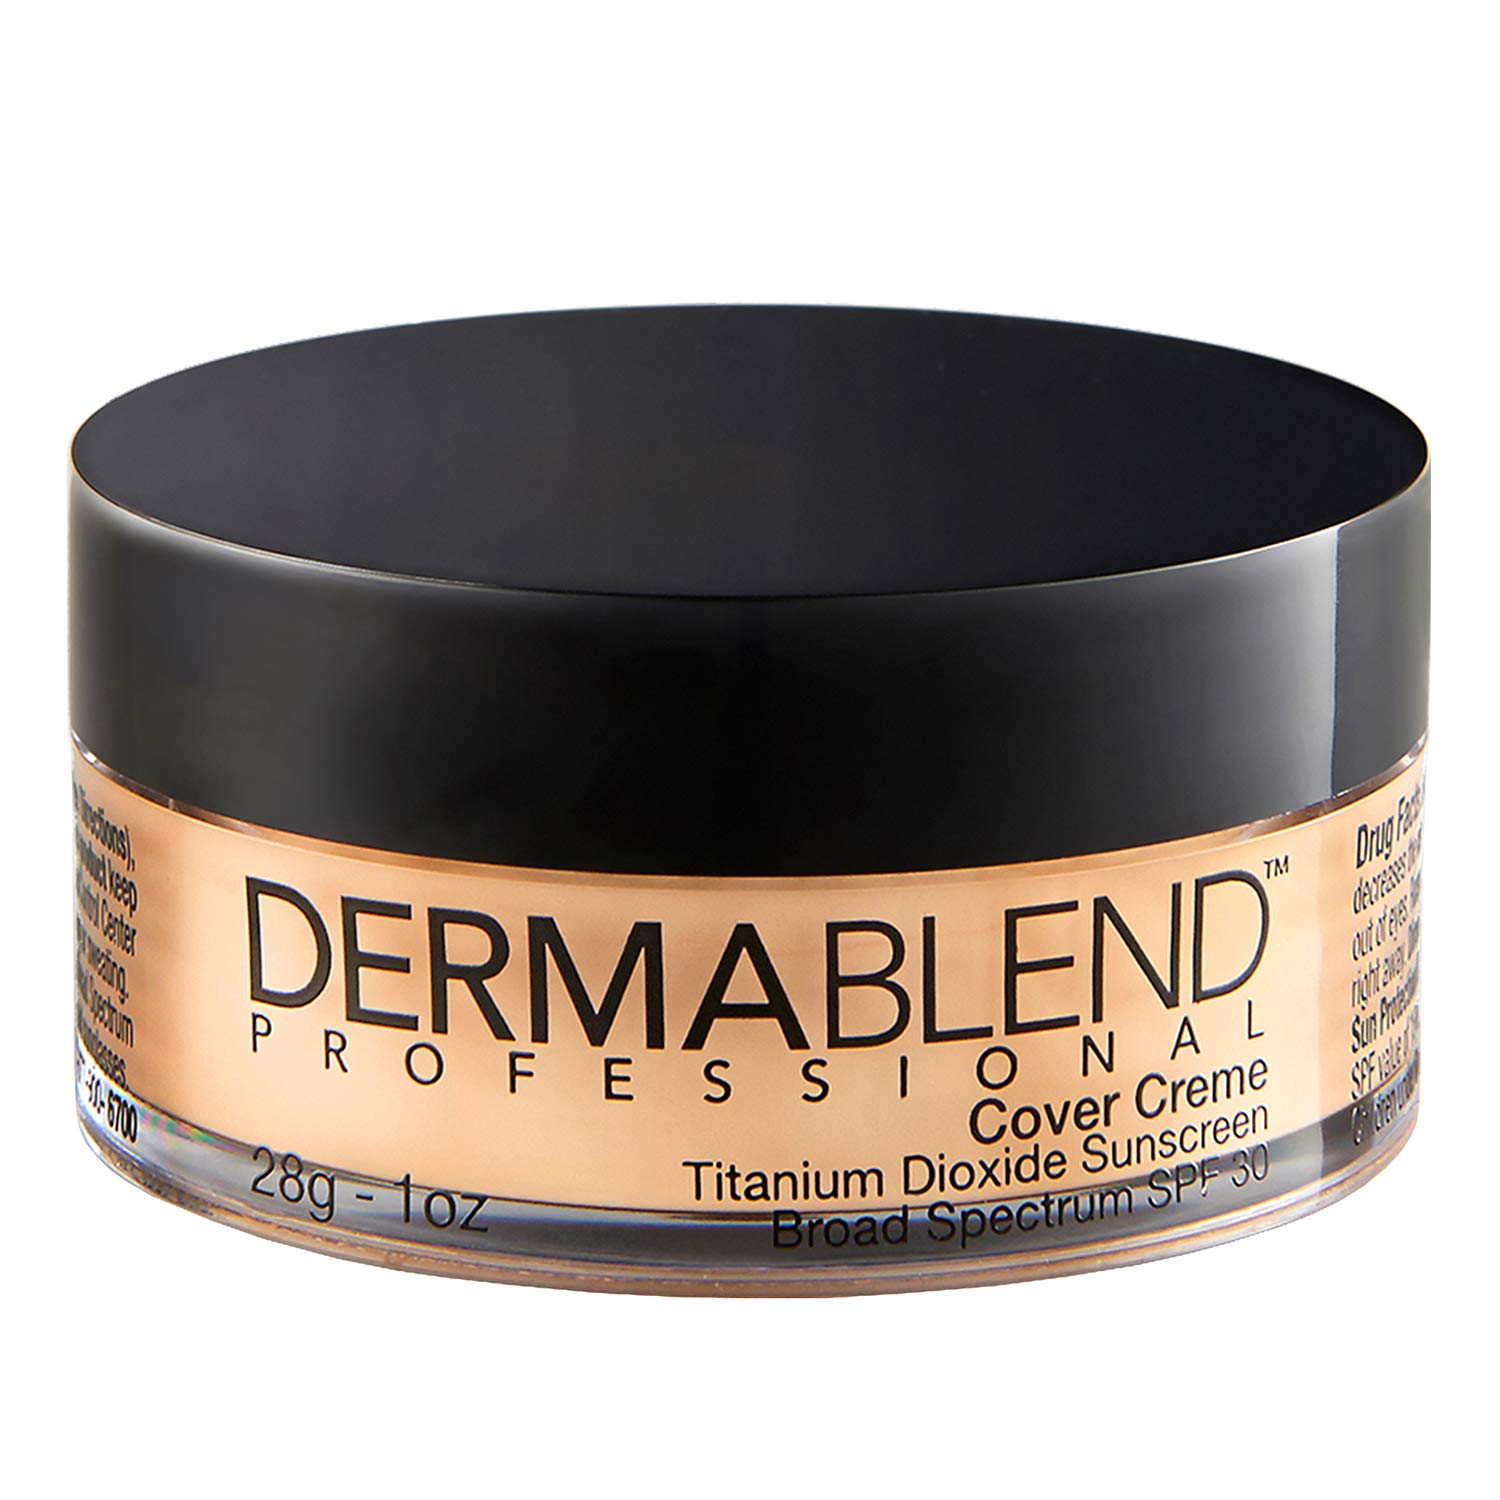 Dermablend Foundation Reviews